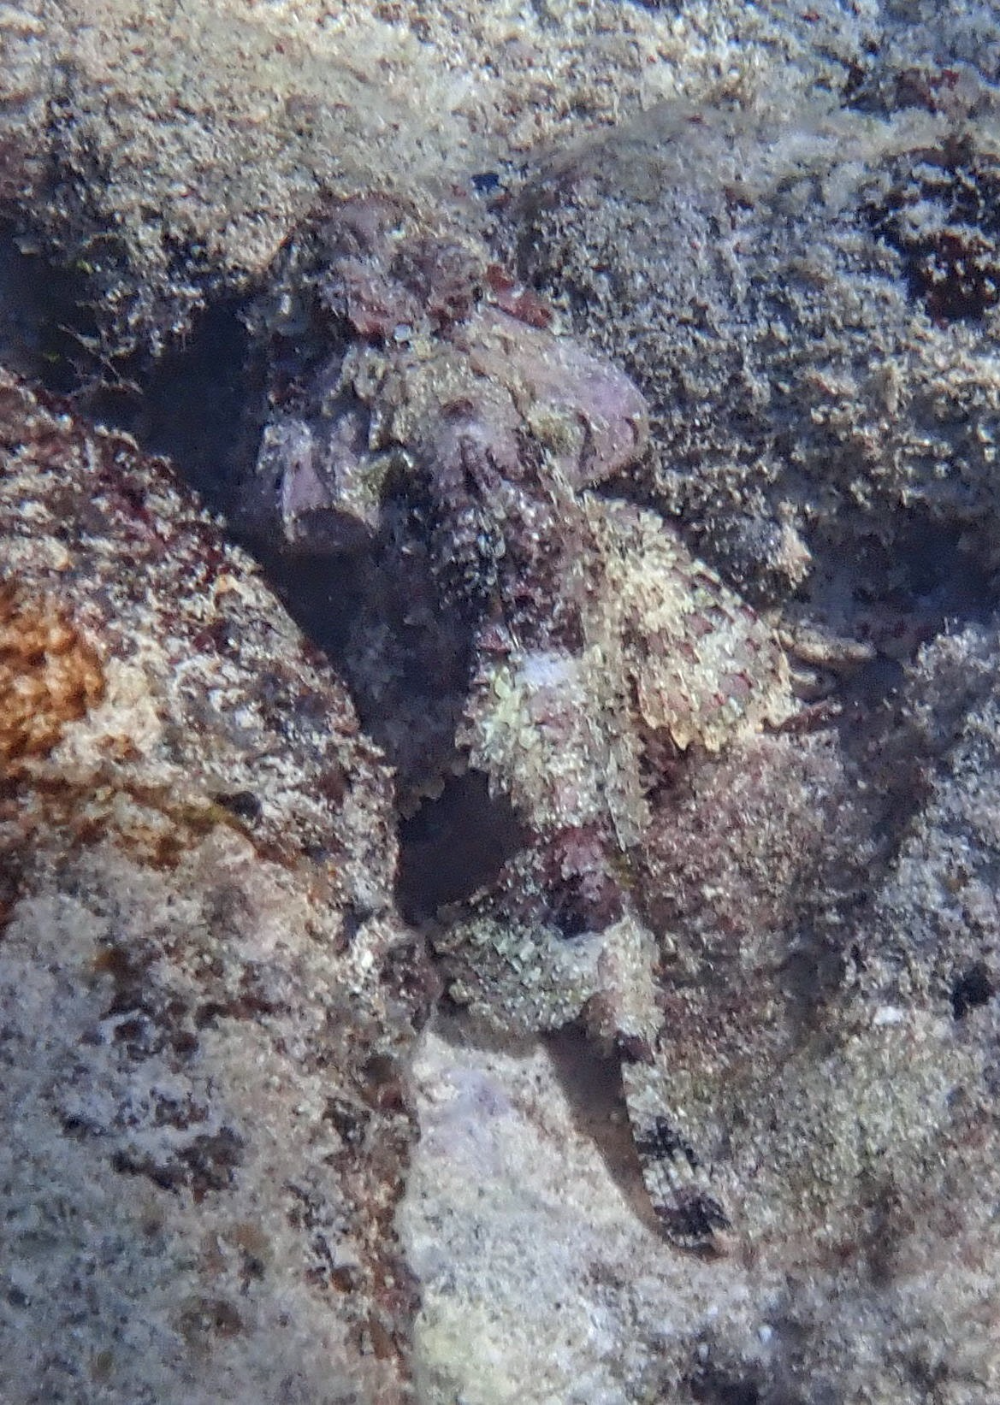 Spotted Scorpionfish from Long Caye, Glover's Reef Atoll, Belize on December 07, 2019 by kayakmak · iNaturalist